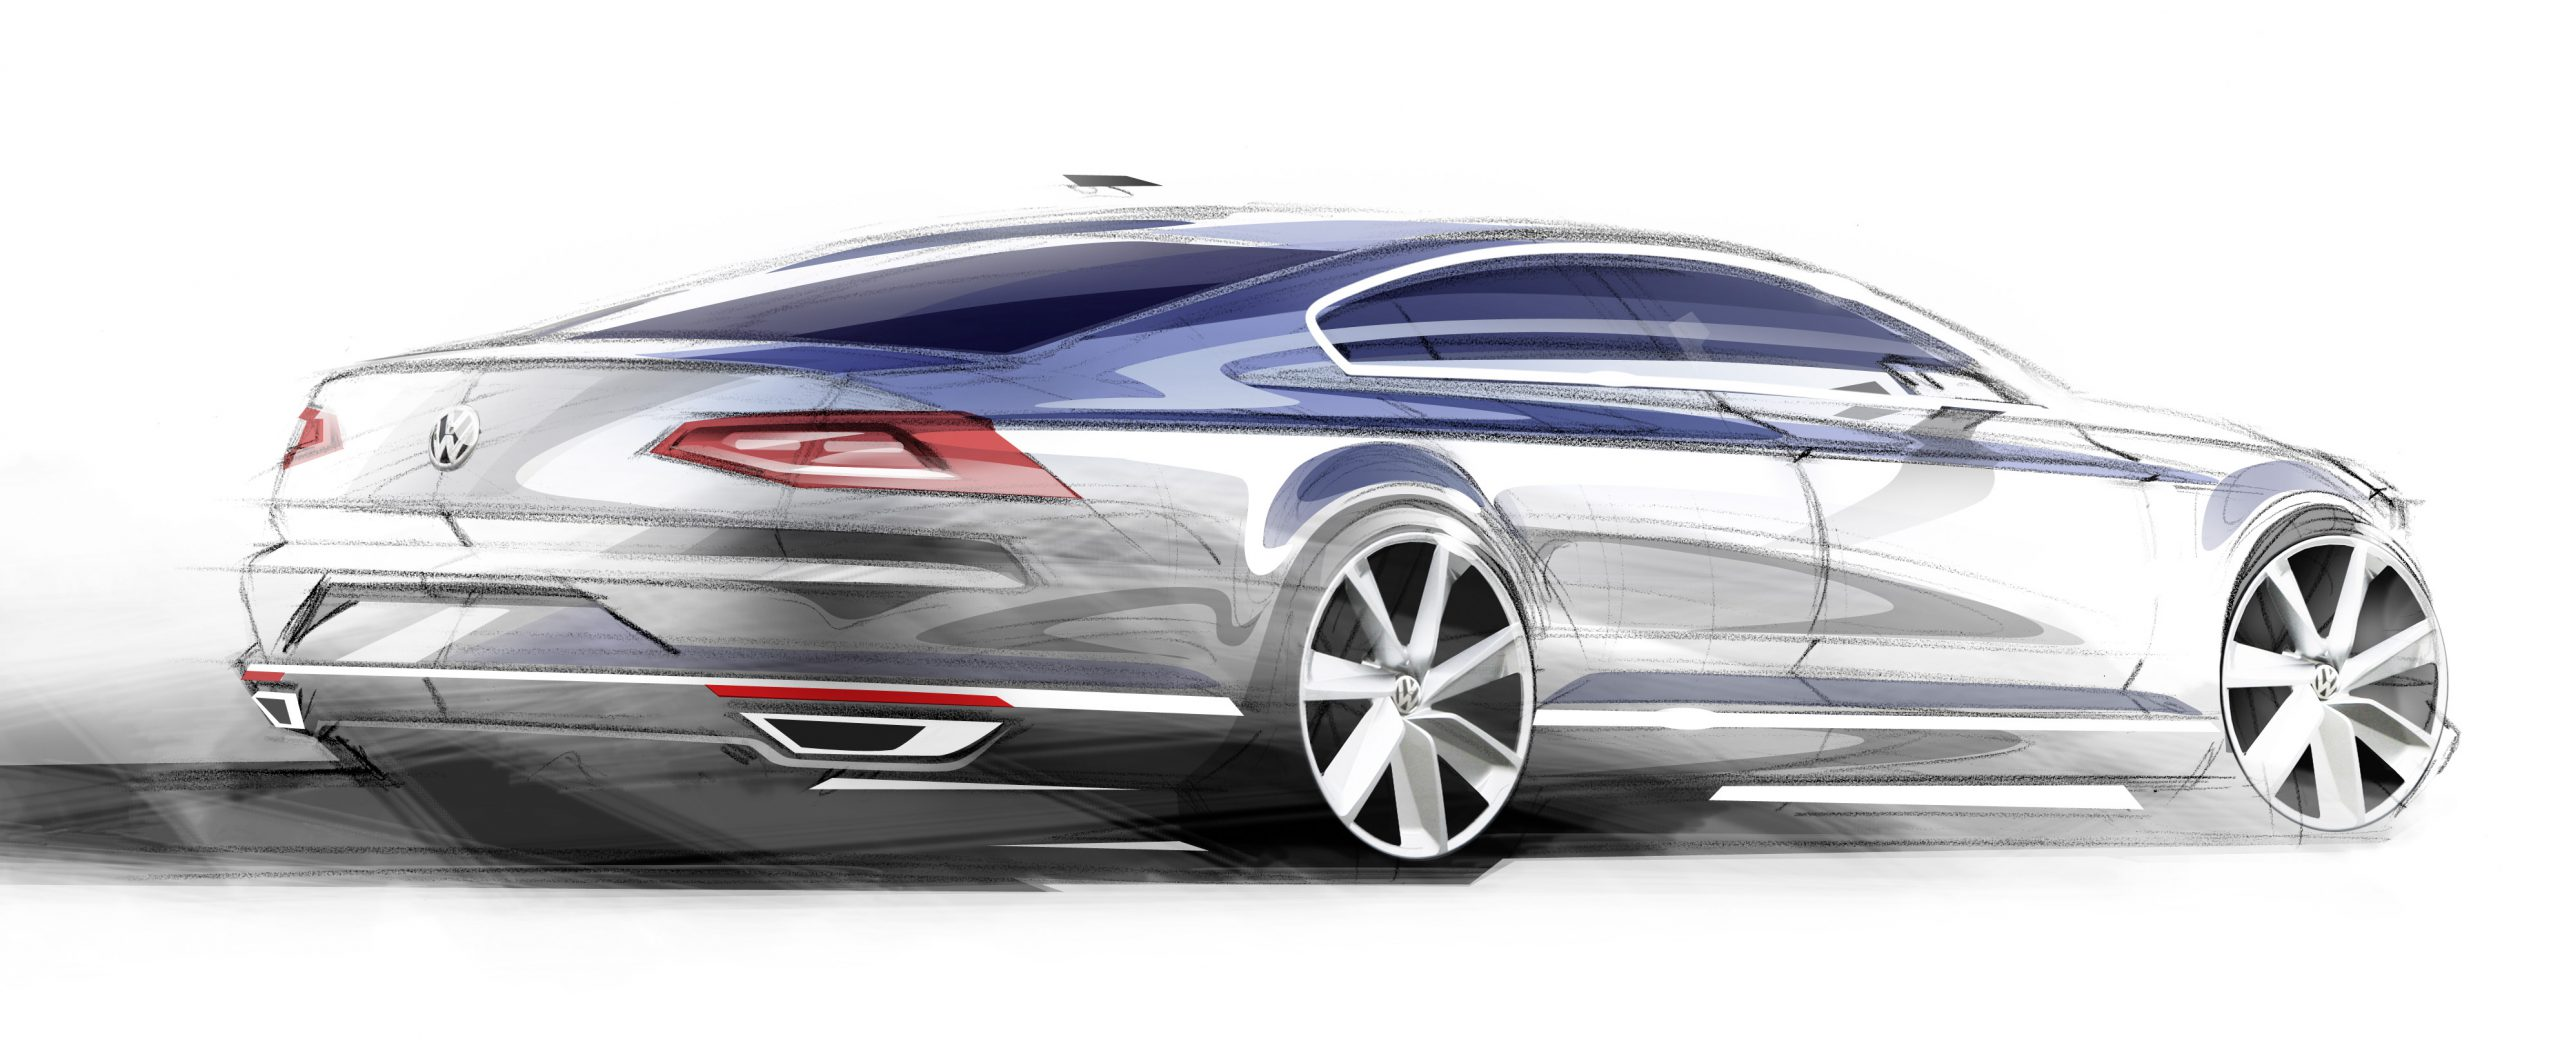 Volkswagen Teases New Passat Latest News Motoring 2013 Wiring Diagram